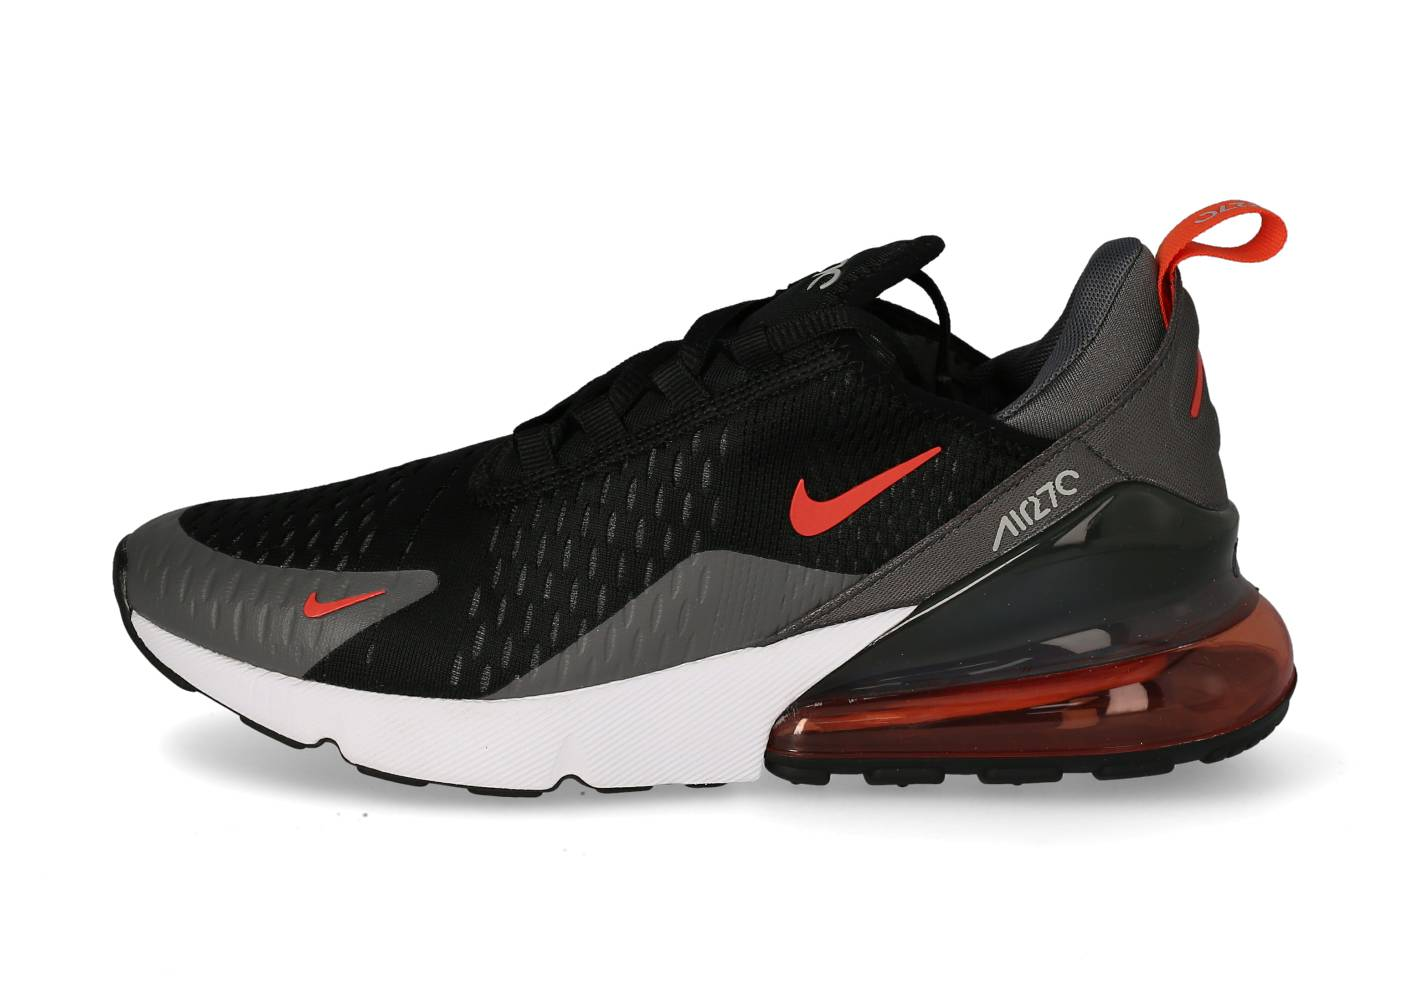 Nike Baskets Nike Nike Air Max 270 Essential Homme Noire Et Grise 43